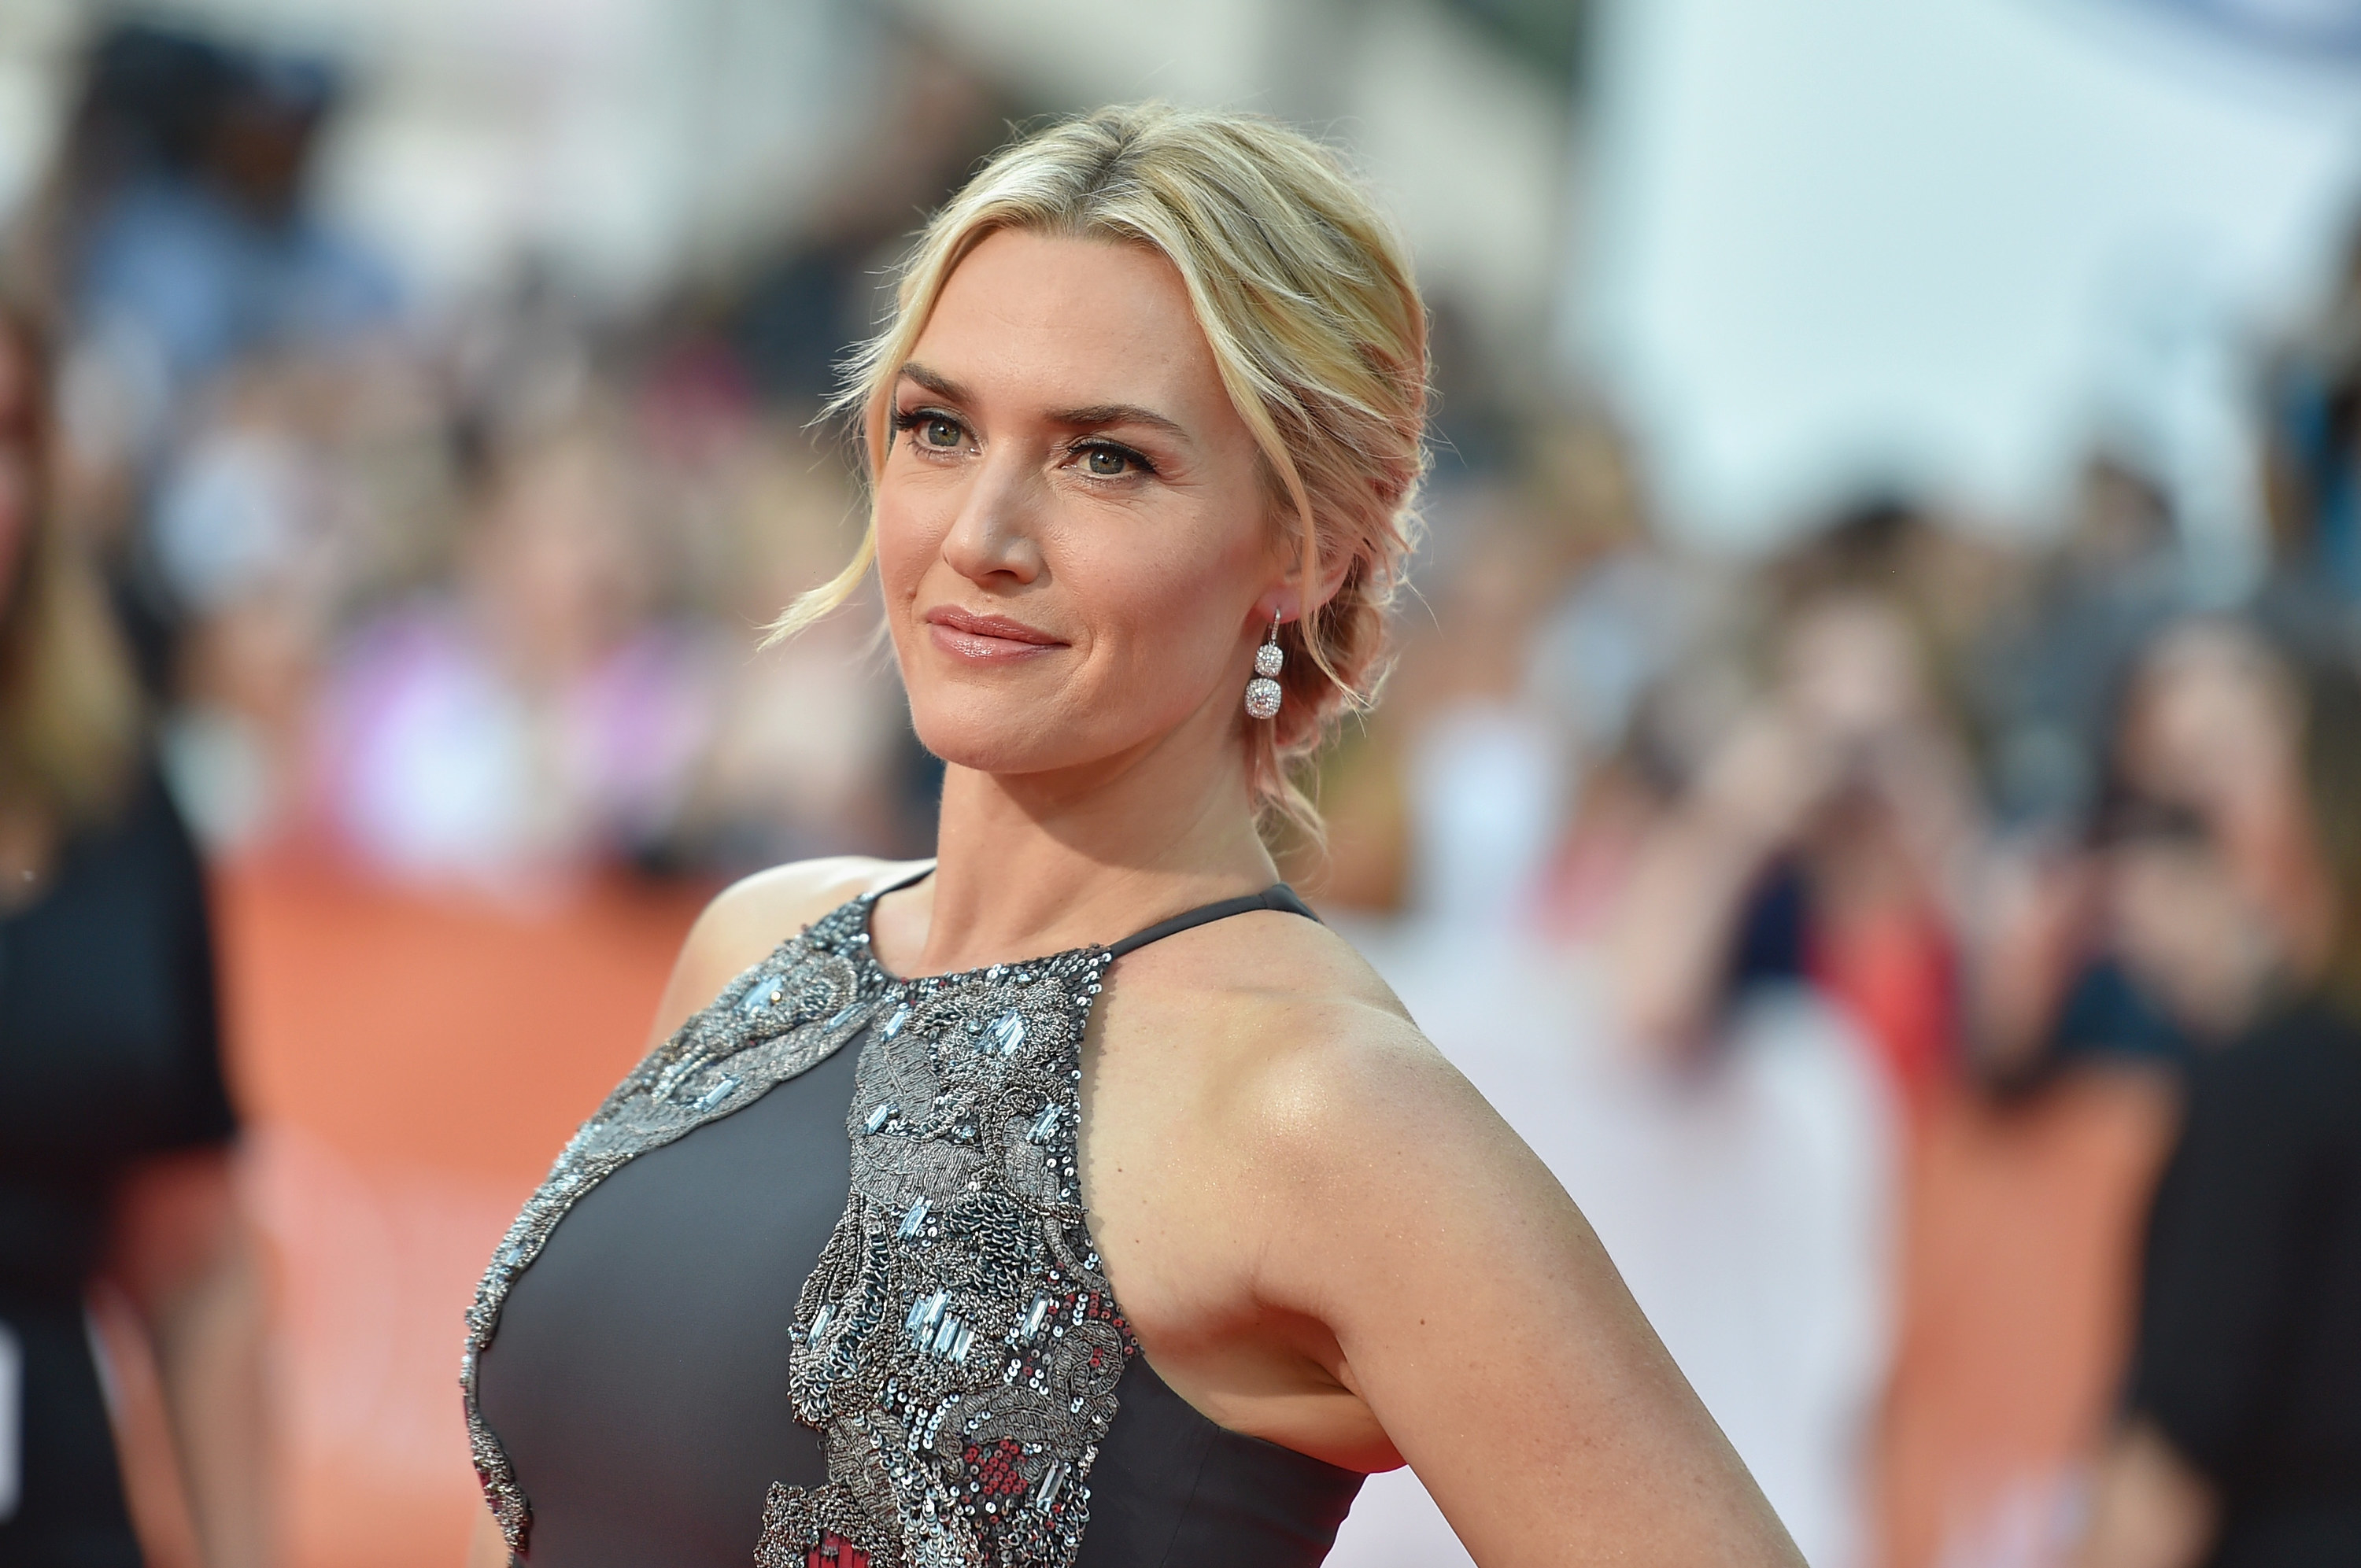 kate winslet in 2015 on the red carpet